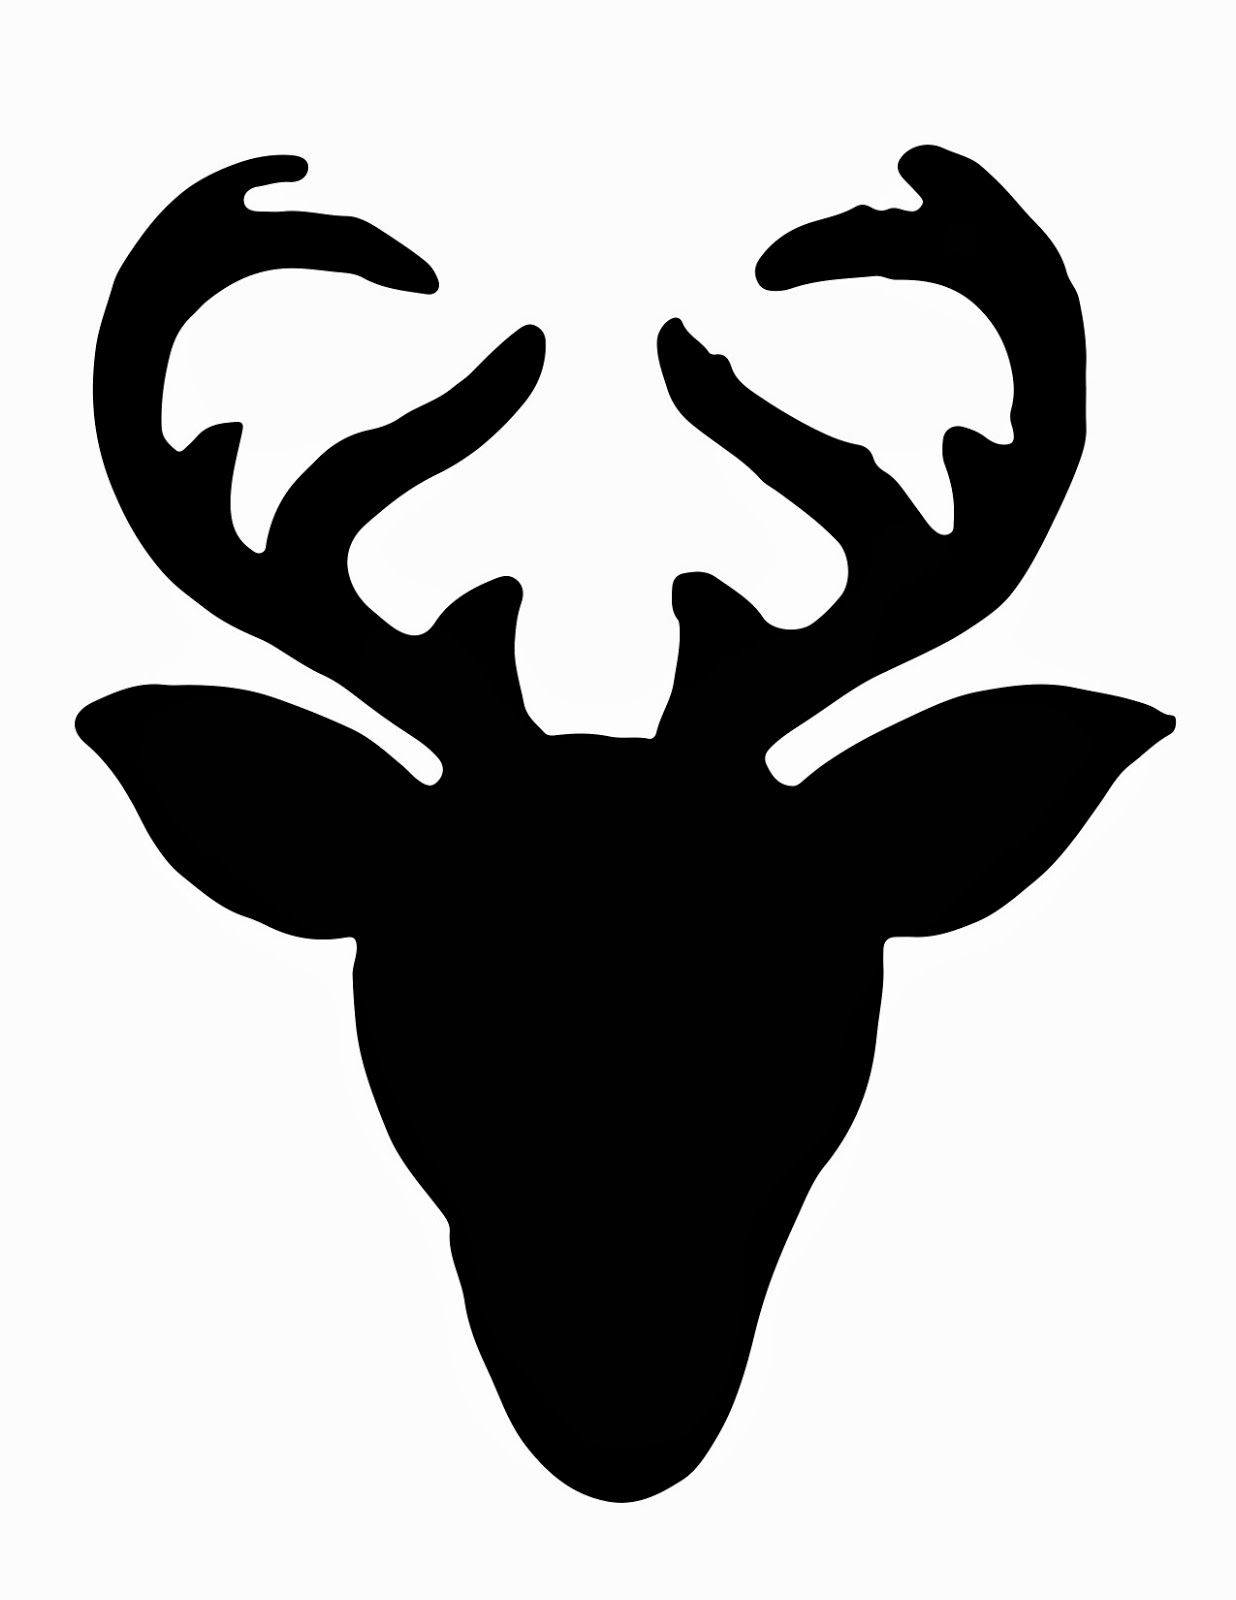 1236x1600 No Sew Deer Head Silhouette Sweater Deer Head Silhouette